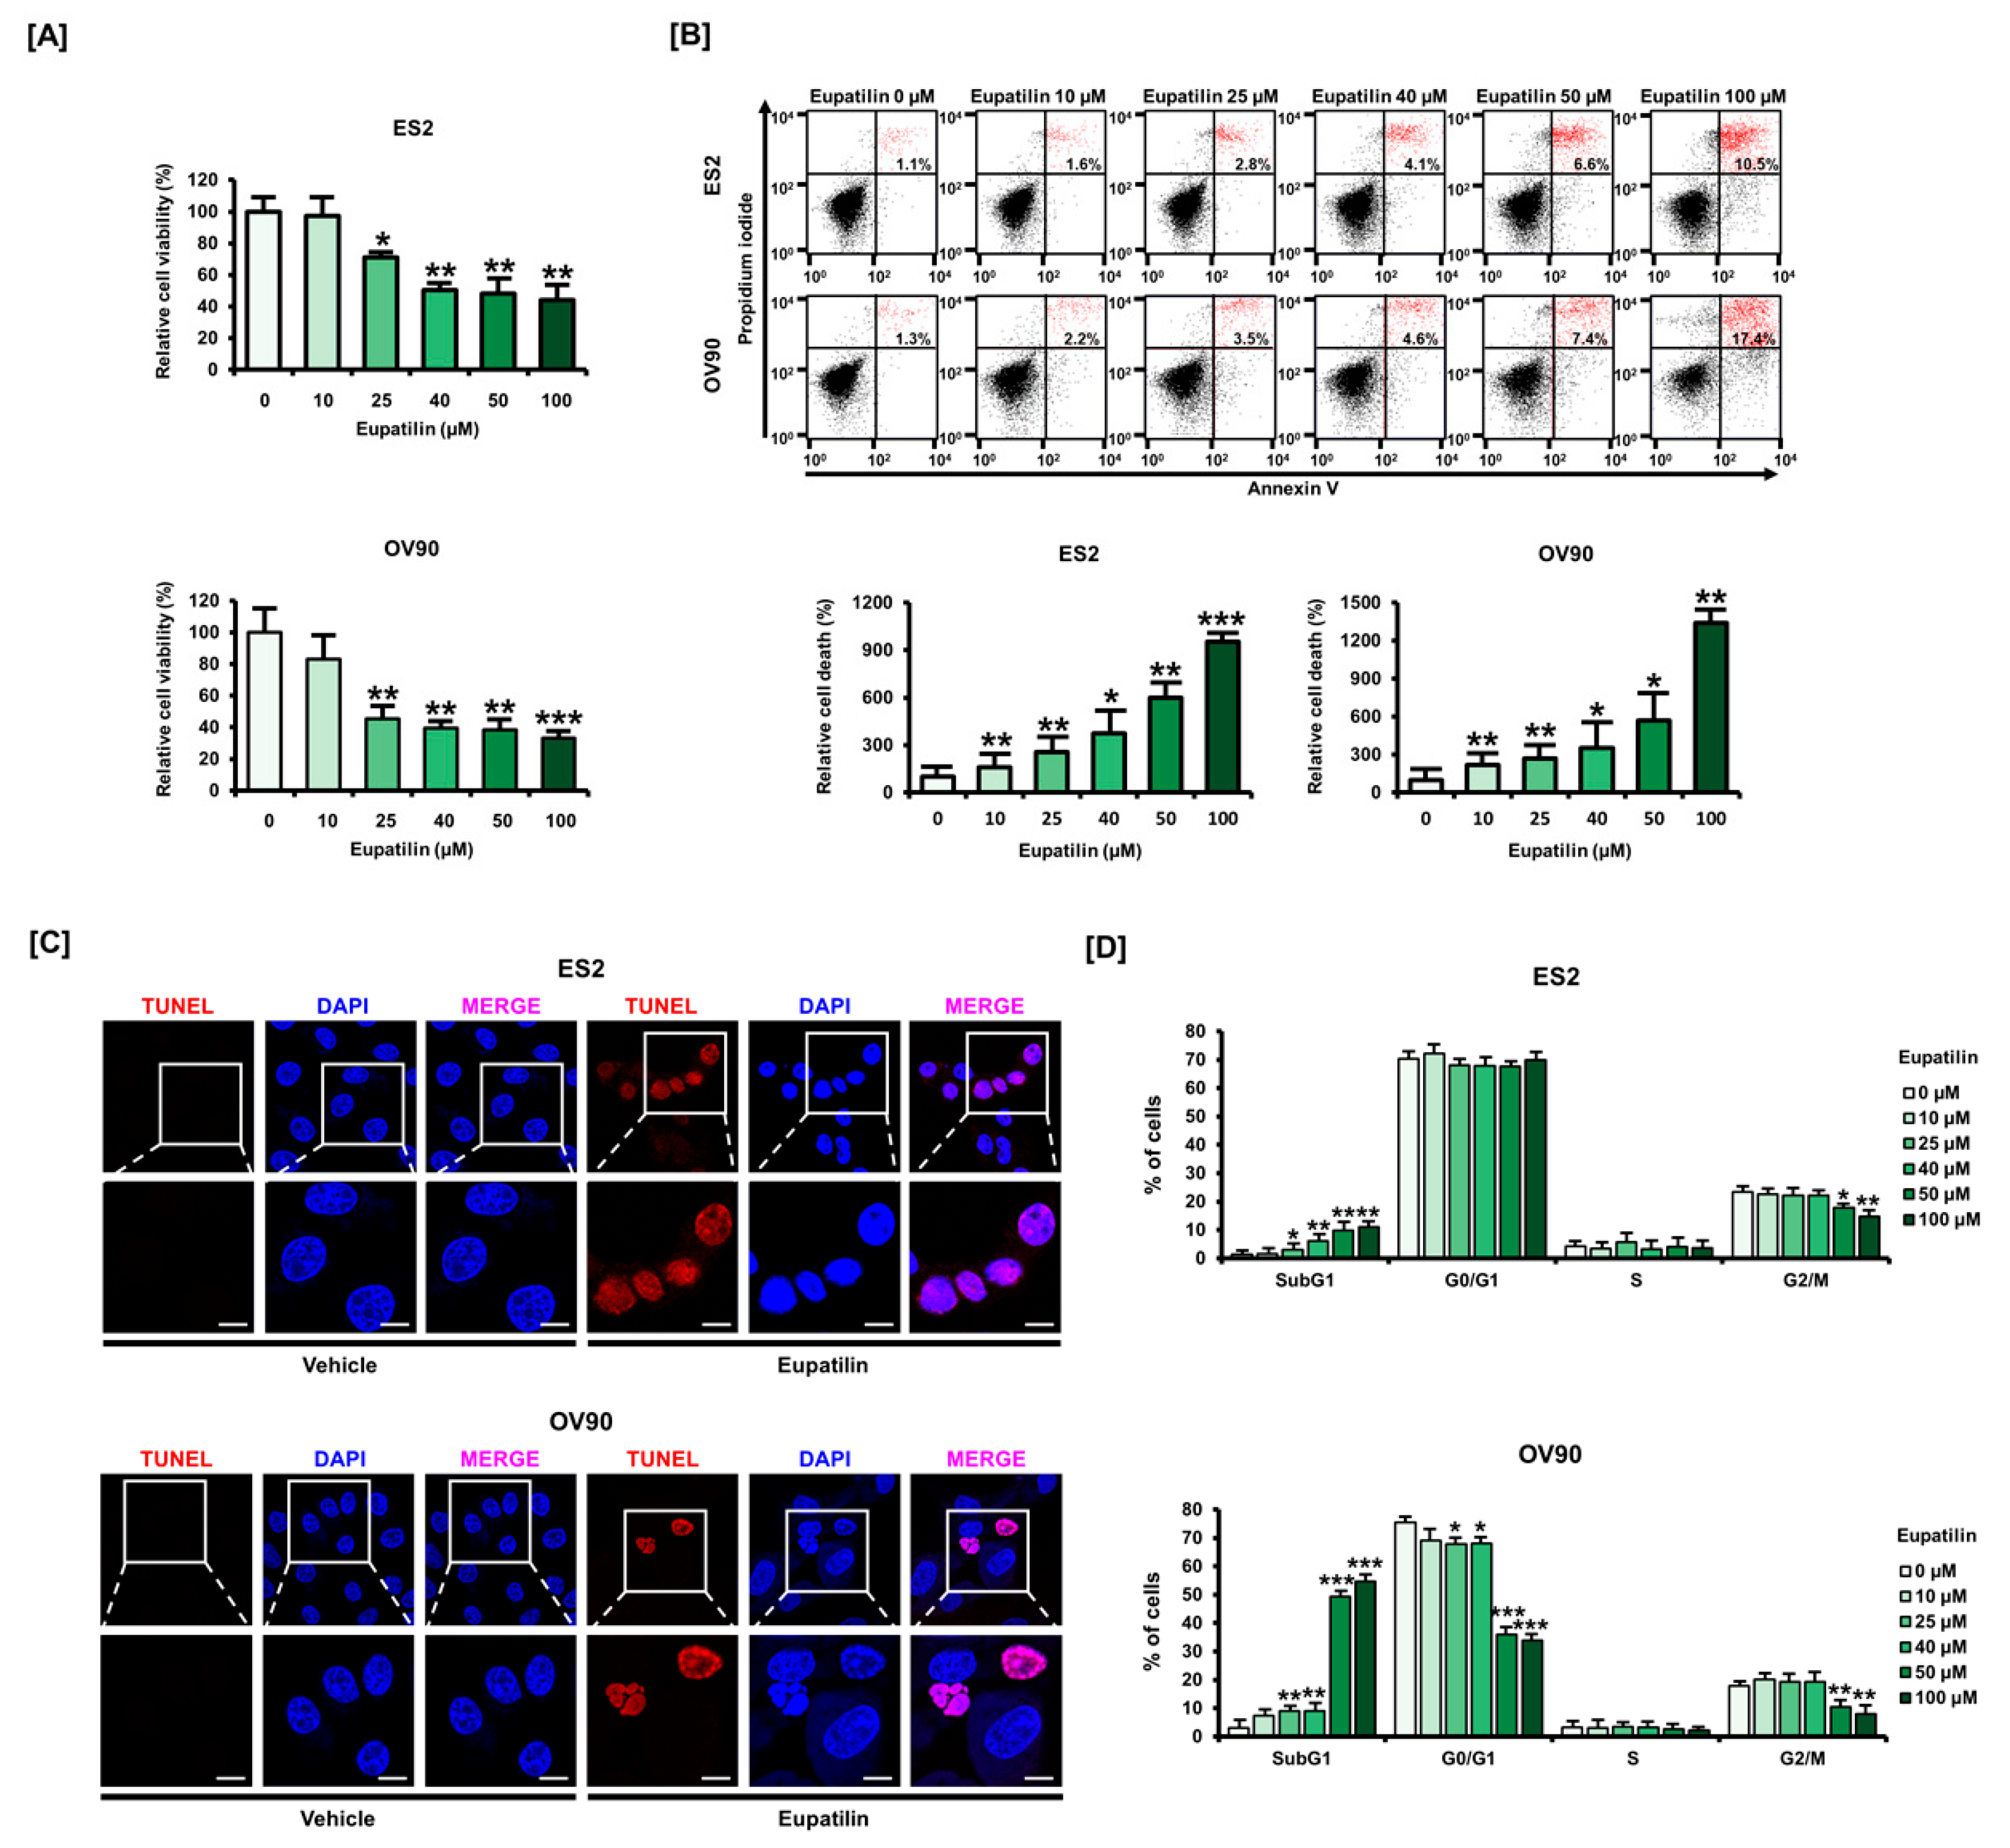 Cancers Free Full Text Eupatilin Promotes Cell Death By Calcium Influx Through Er Mitochondria Axis With Serpinb11 Inhibition In Epithelial Ovarian Cancer Html